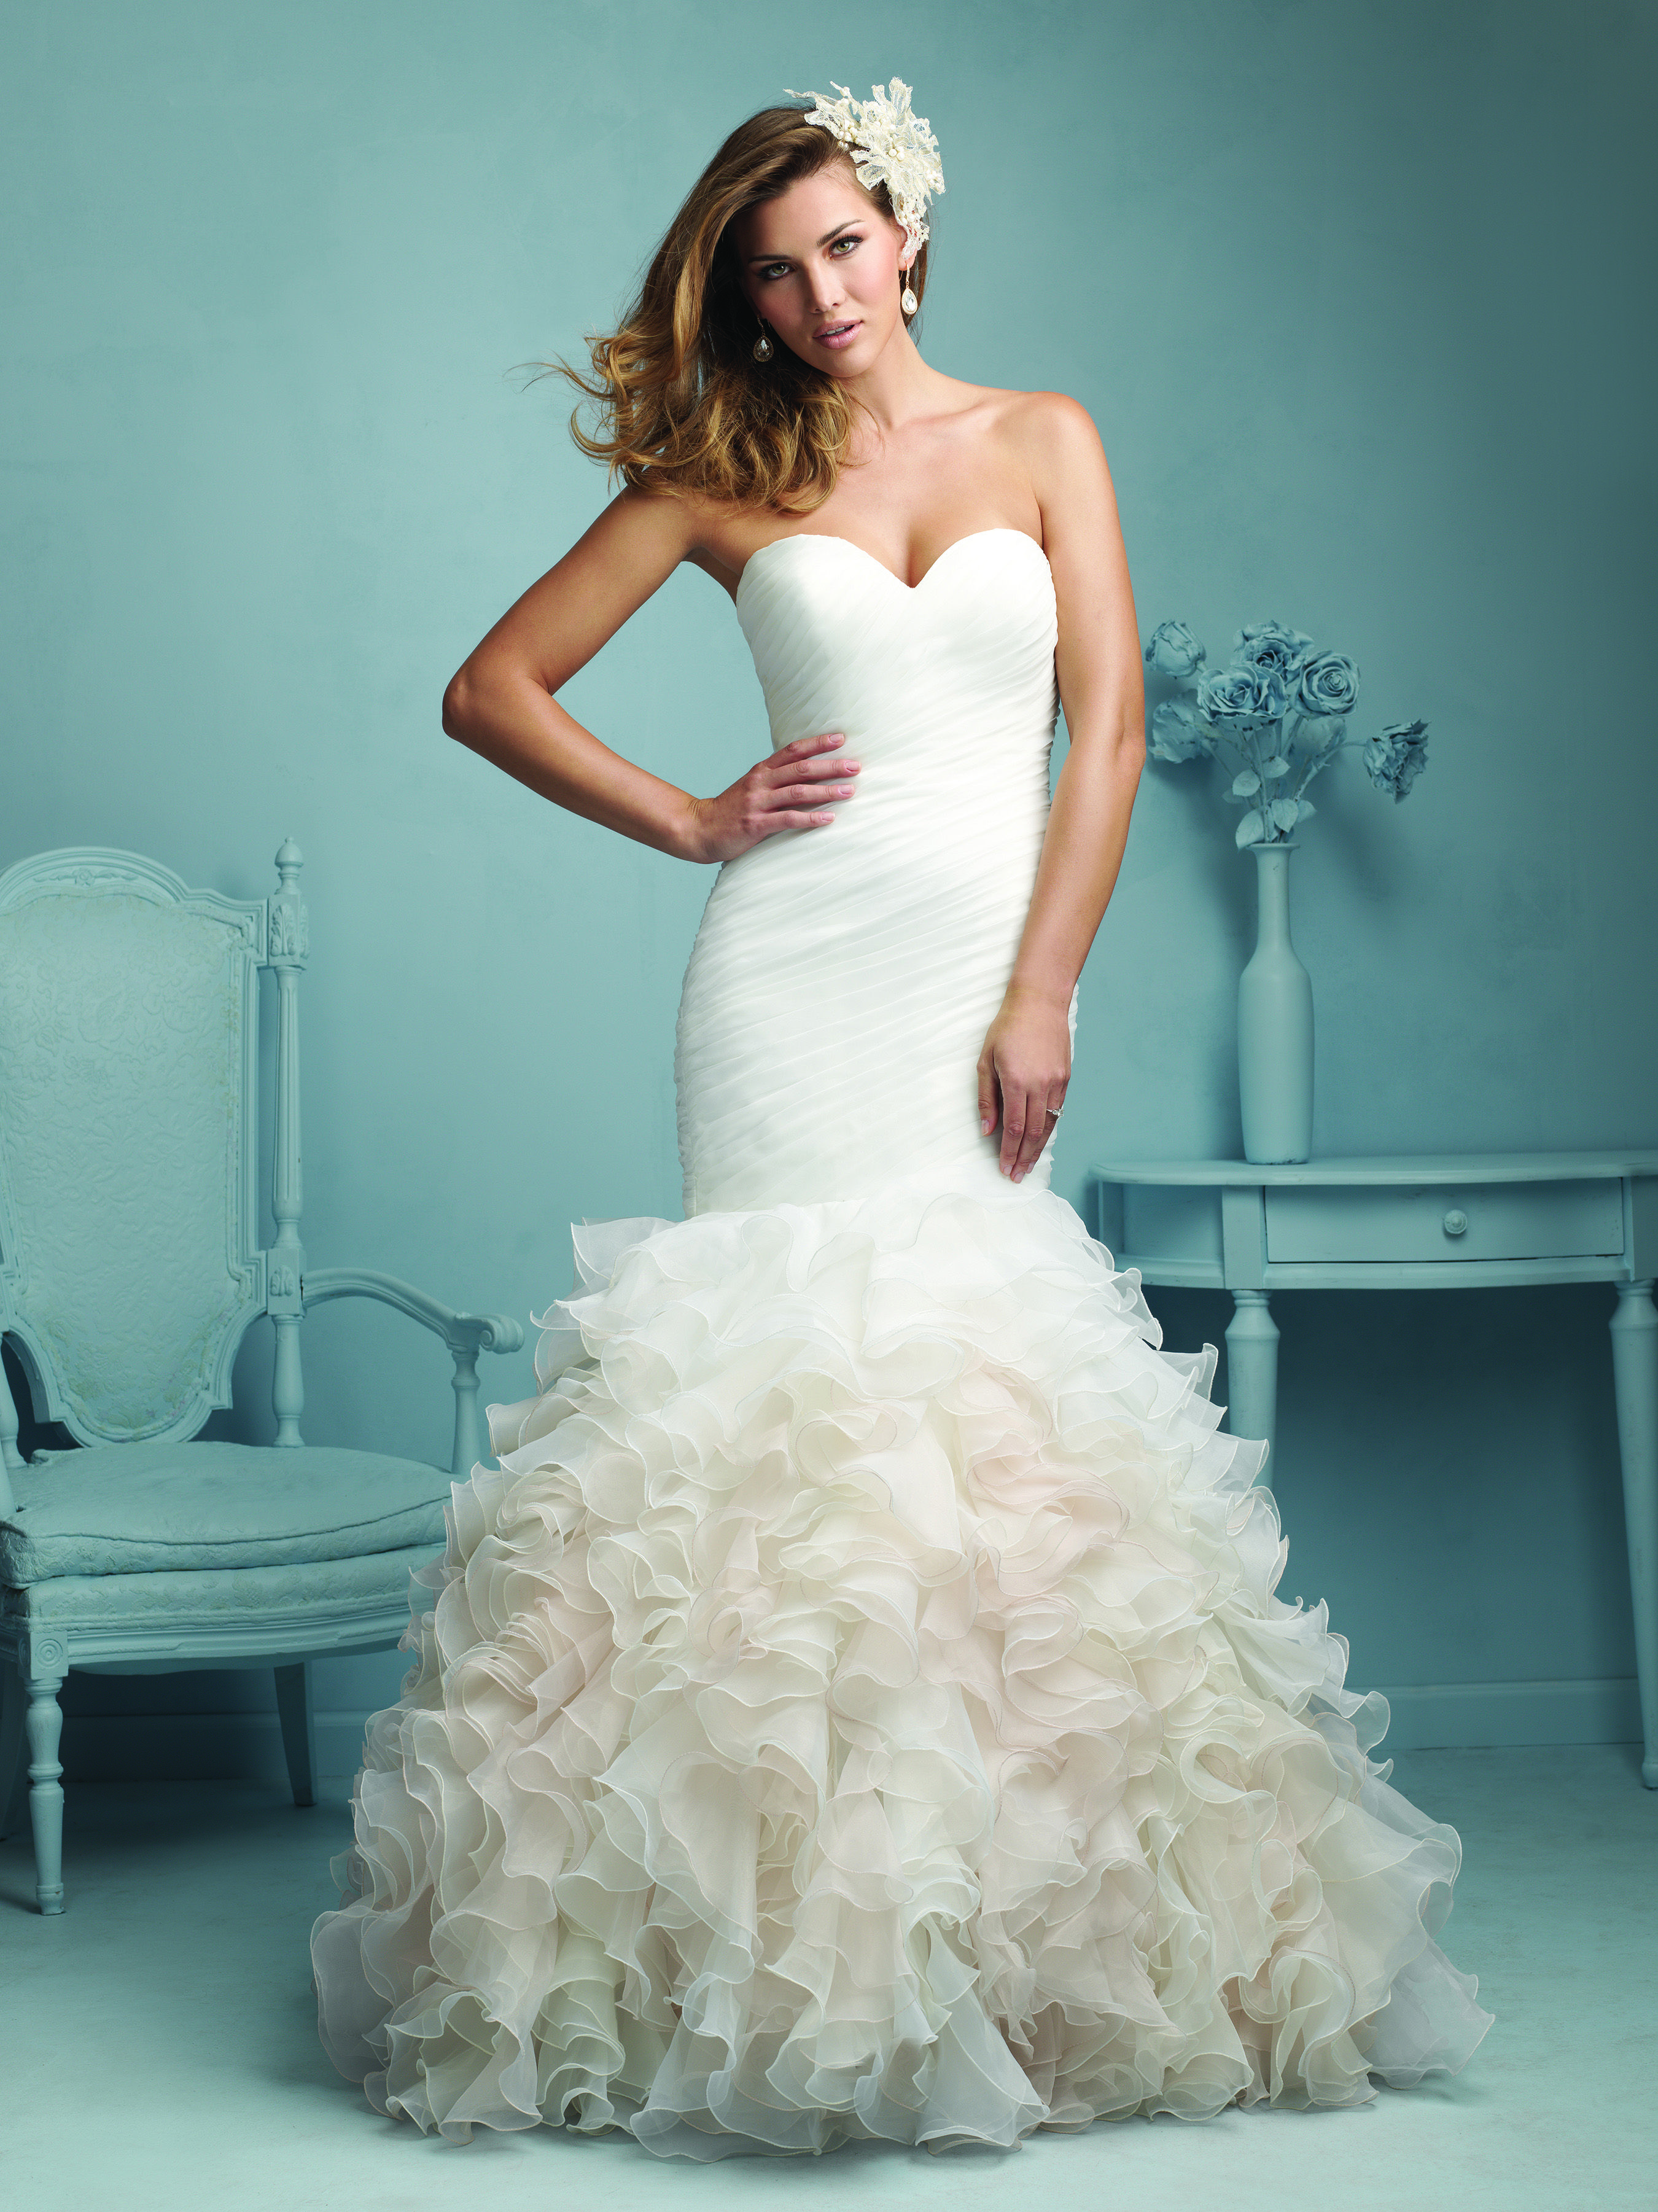 Allure Bridals 9223 Ashley Rene\'s 655 CR 17 Elkhart, IN 46516 (574 ...